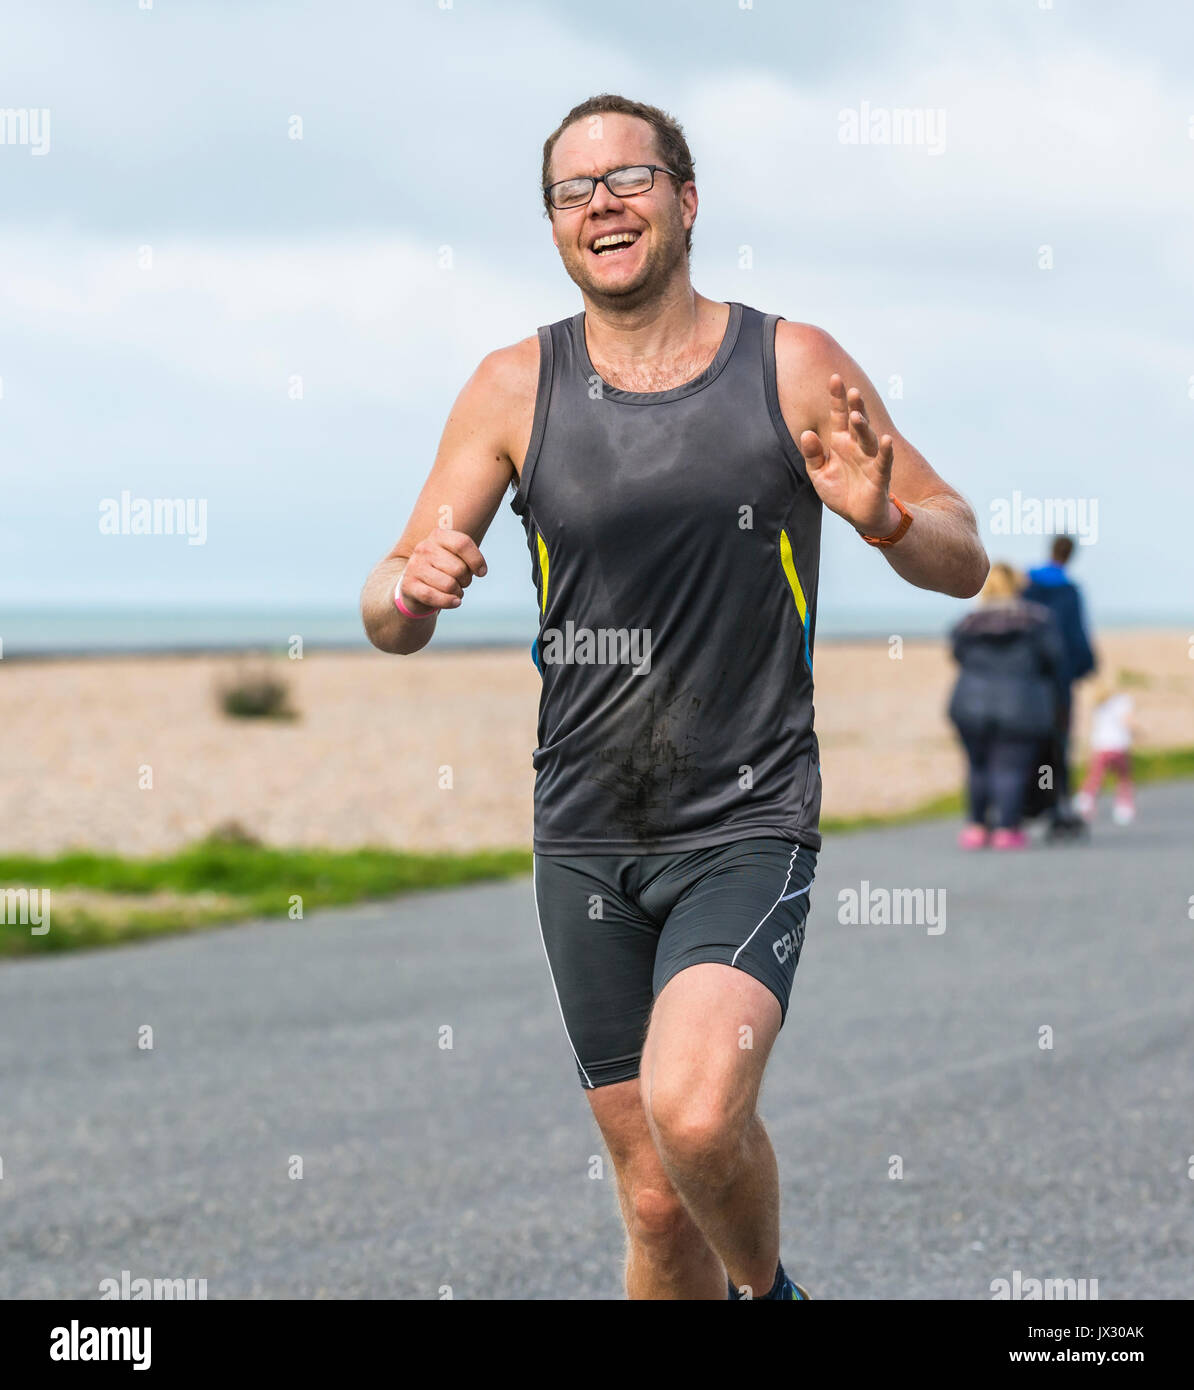 Man running as part of a running event along a seafront promenade. - Stock Image